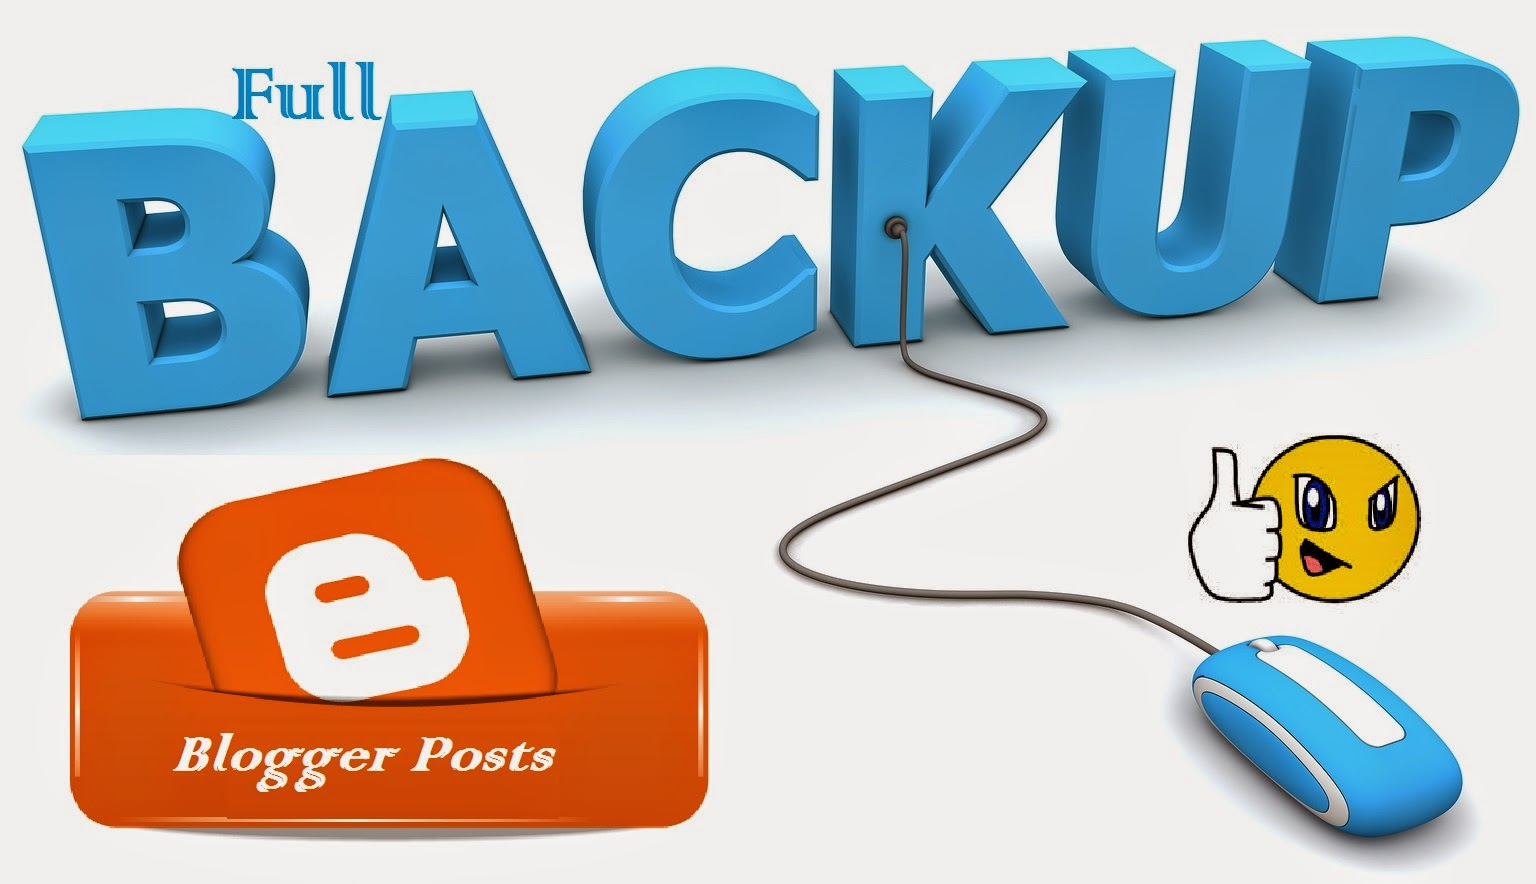 download_full_backup_of_blogger_blog_posts